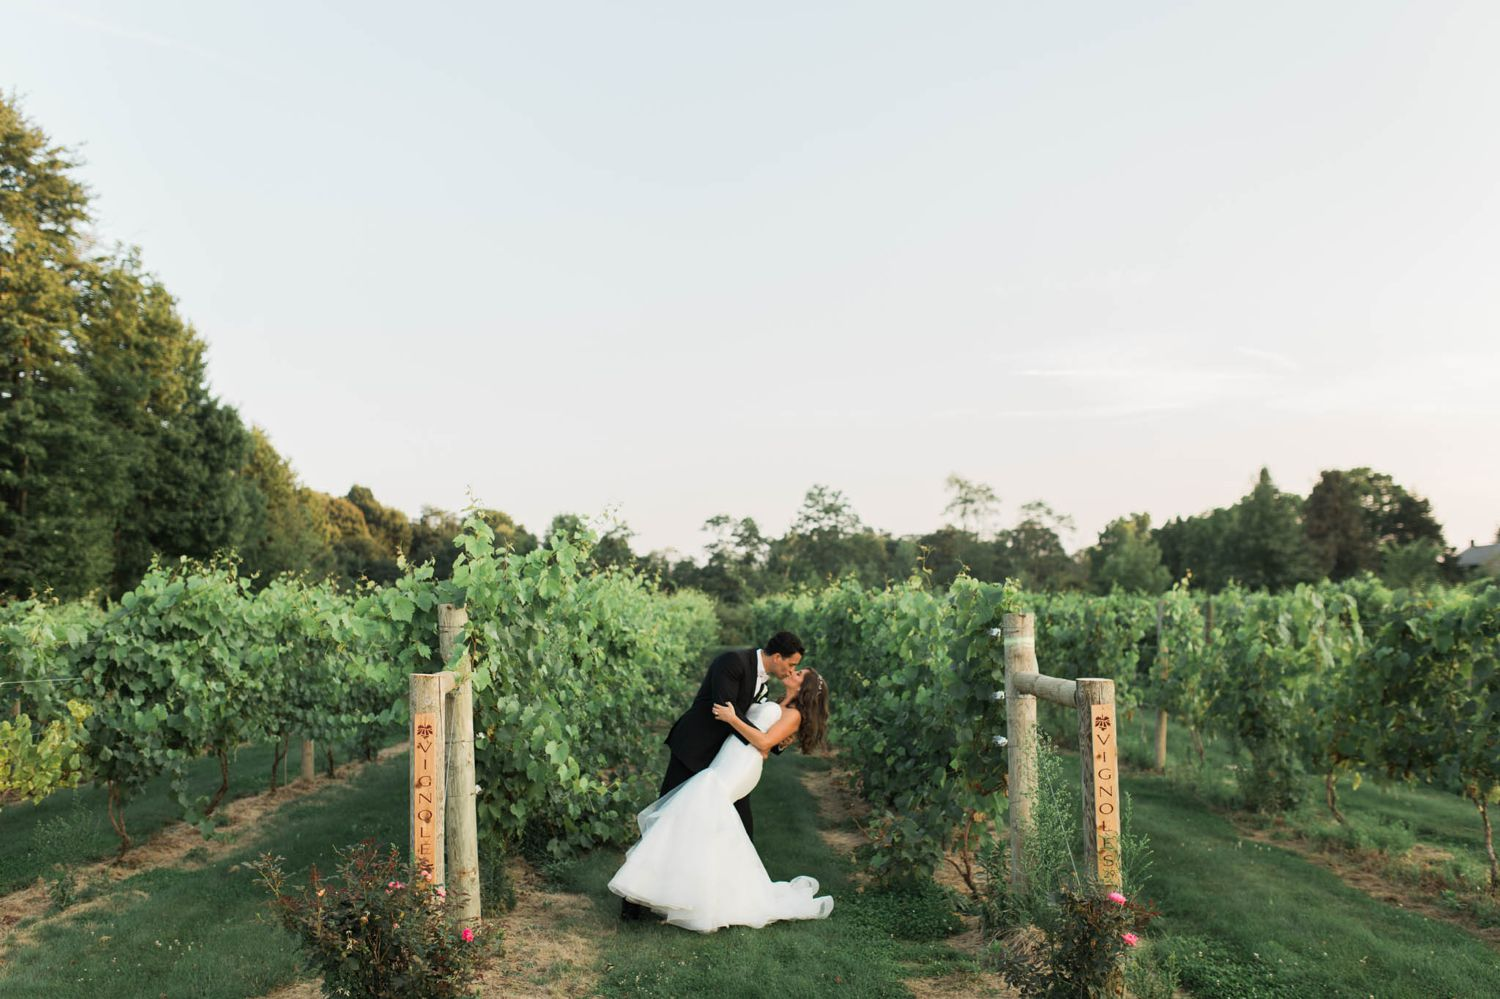 chloe-and-lou-vineyards-at-pinelake-tracylynn-photography-youngstown-ohio 30.jpg